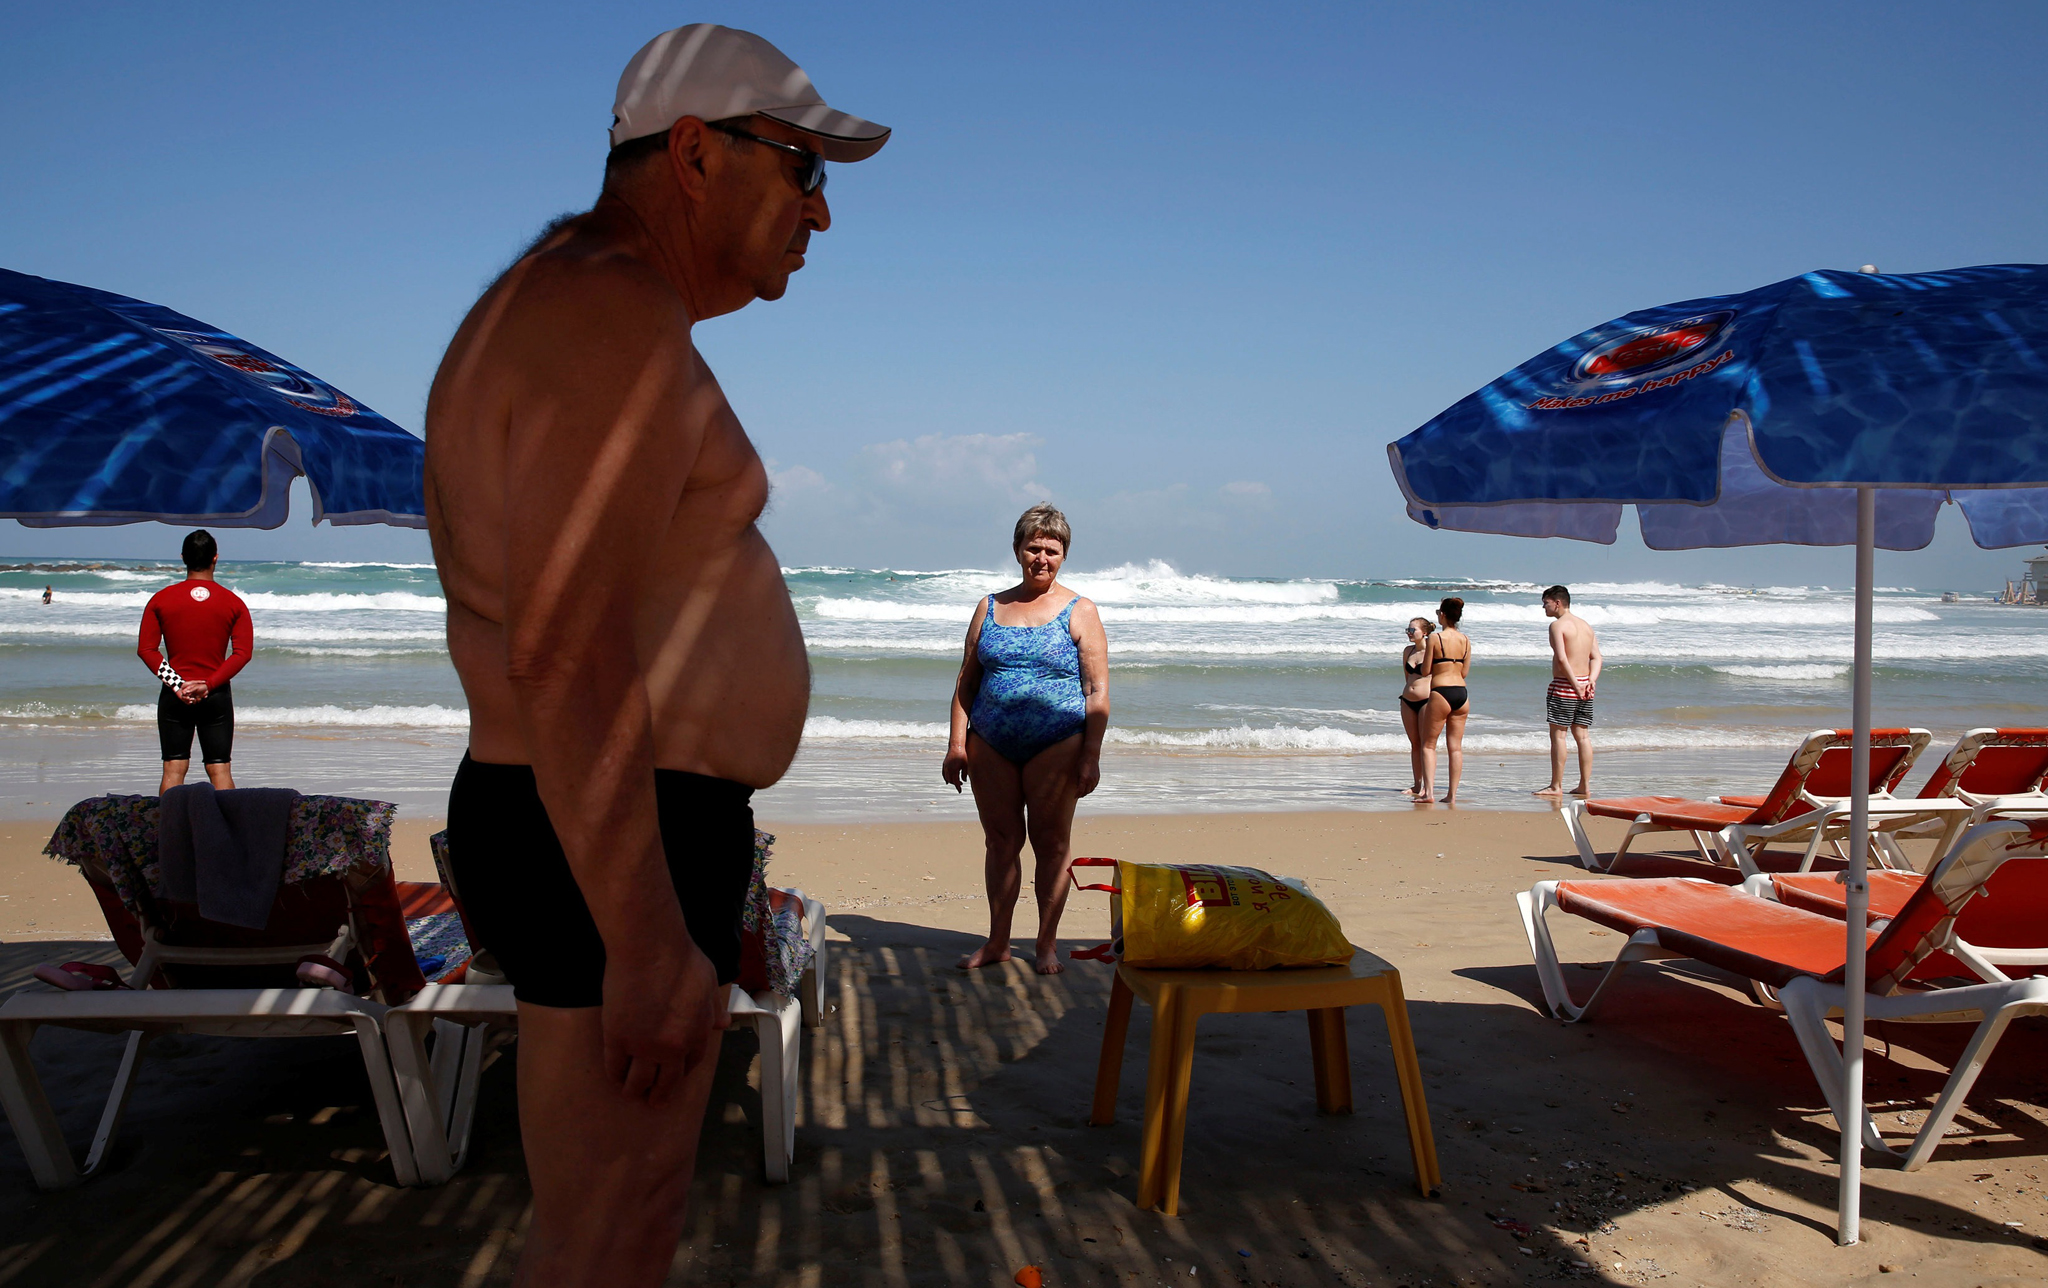 Beach-goers stand still as a two-minute siren marking annual Holocaust Remembrance Day in Israel is sounded in Netanya, Israel May 5, 2016